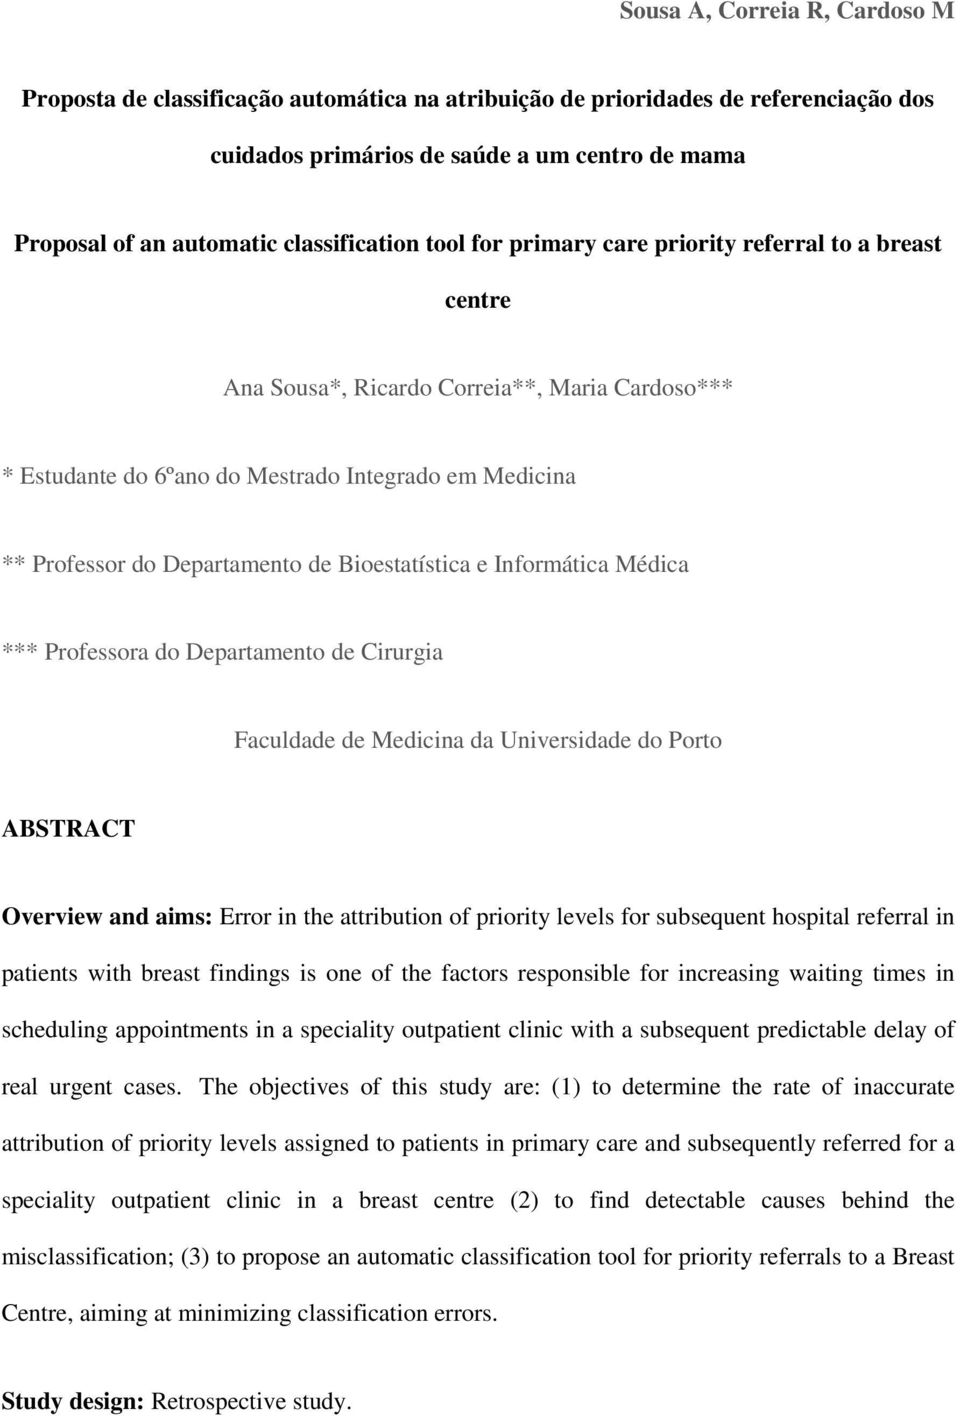 Departamento de Bioestatística e Informática Médica *** Professora do Departamento de Cirurgia Faculdade de Medicina da Universidade do Porto ABSTRACT Overview and aims: Error in the attribution of